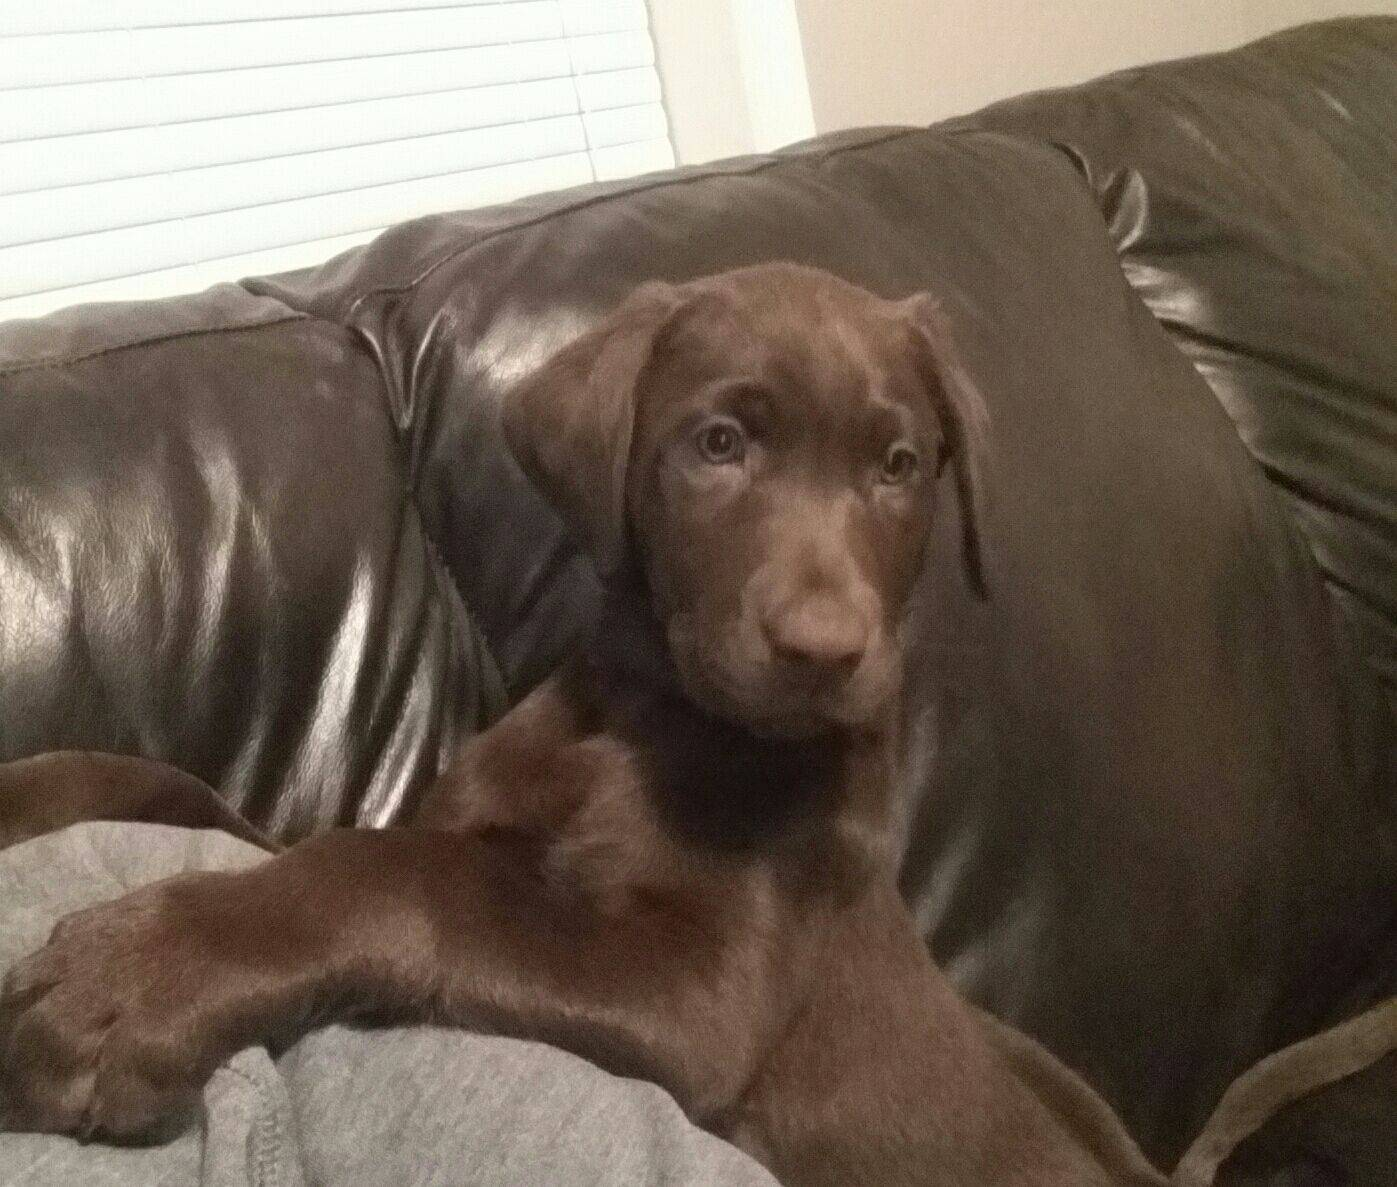 Atticus (Blue Collar Chocolate Male) at his new home